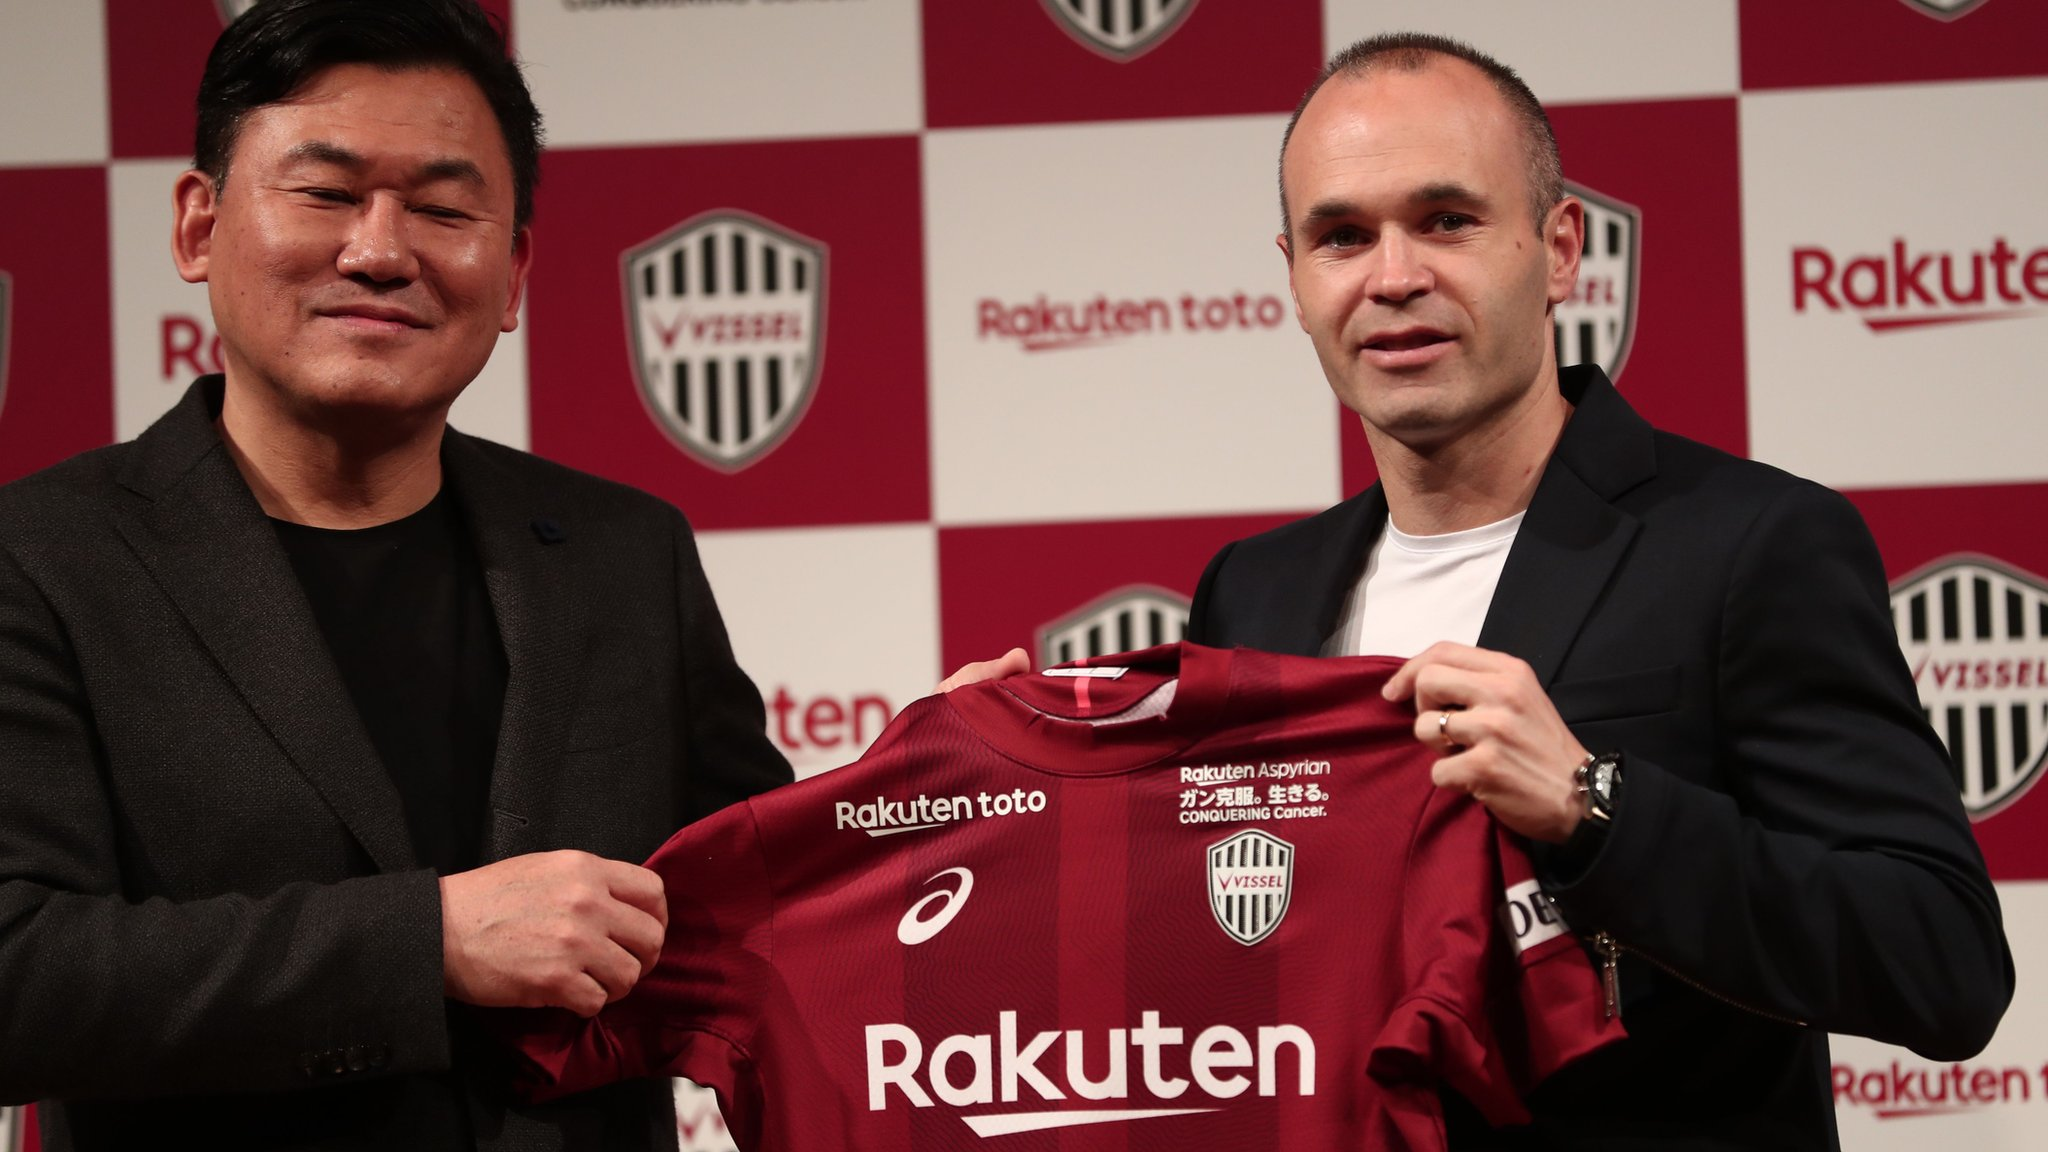 'I had a lot of offers' - Iniesta completes '$30m' move to Japan